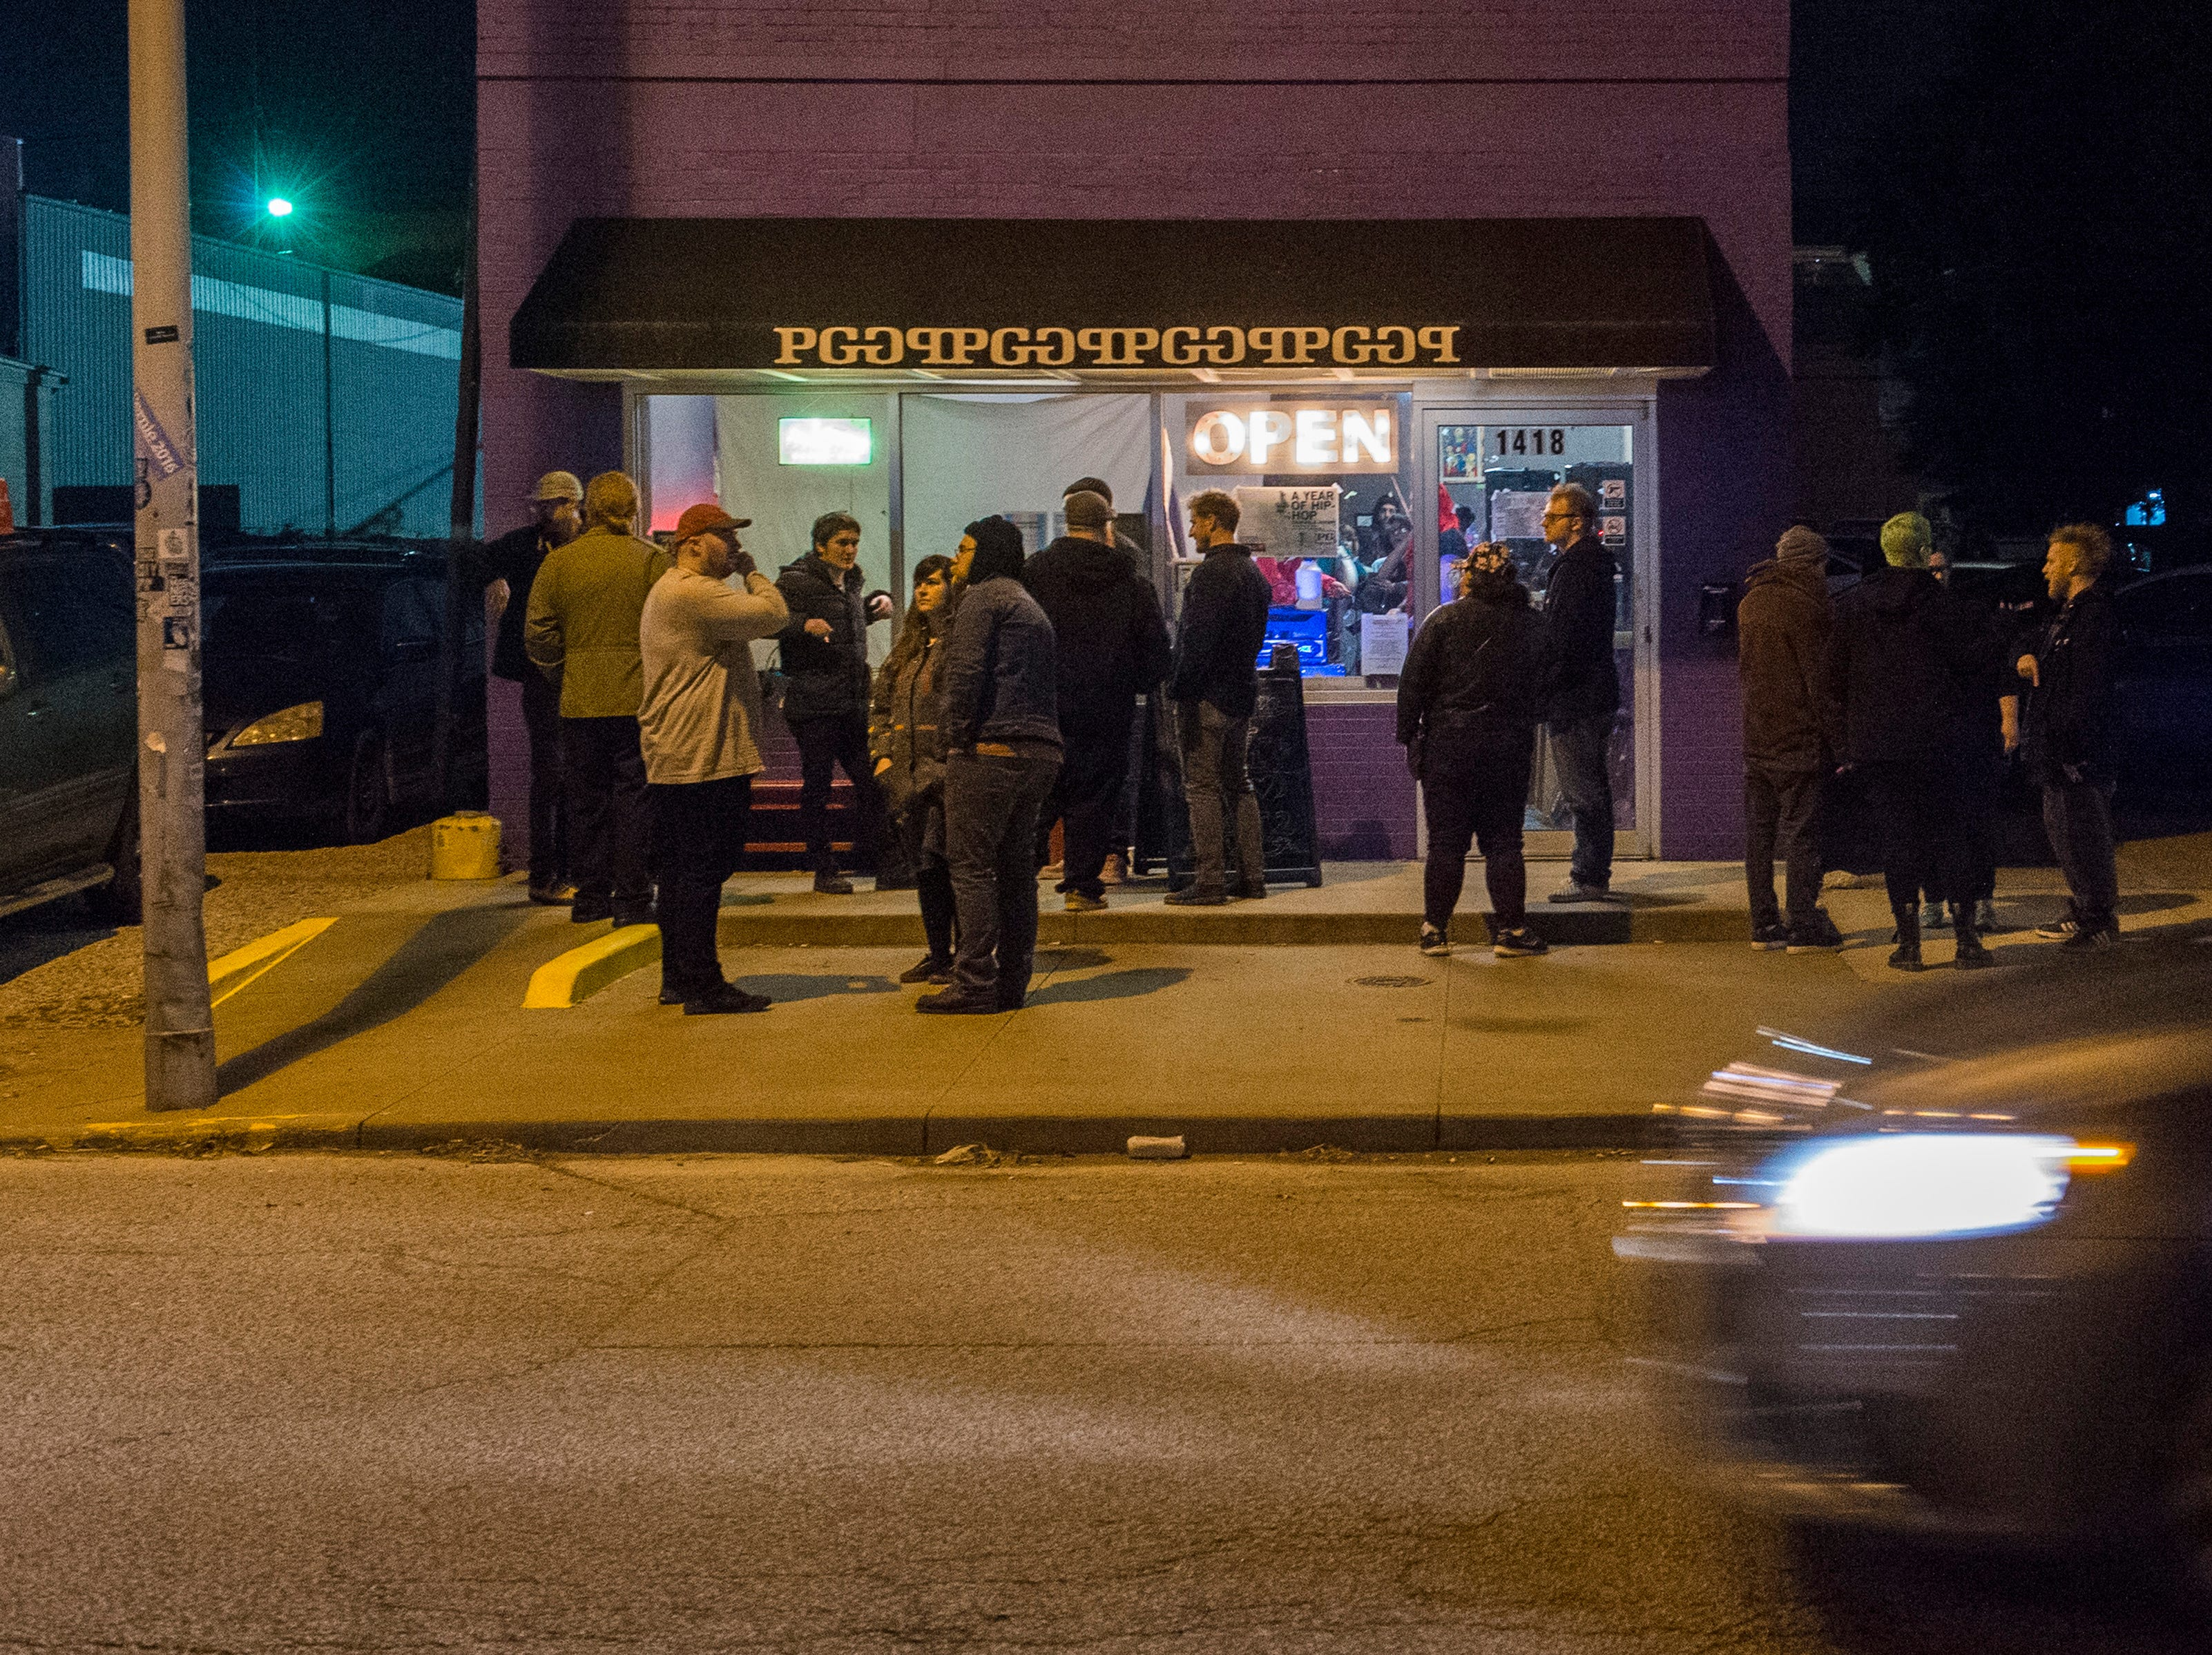 People stand outside between bands during PG's Farewell Weekend show Saturday, Dec. 29, 2018. PG, a cafe, art and music venue, opened March 15, 2013 and has served as a gathering place for the creative community in Evansville. Their final day open is Monday, Dec. 31, 2018.